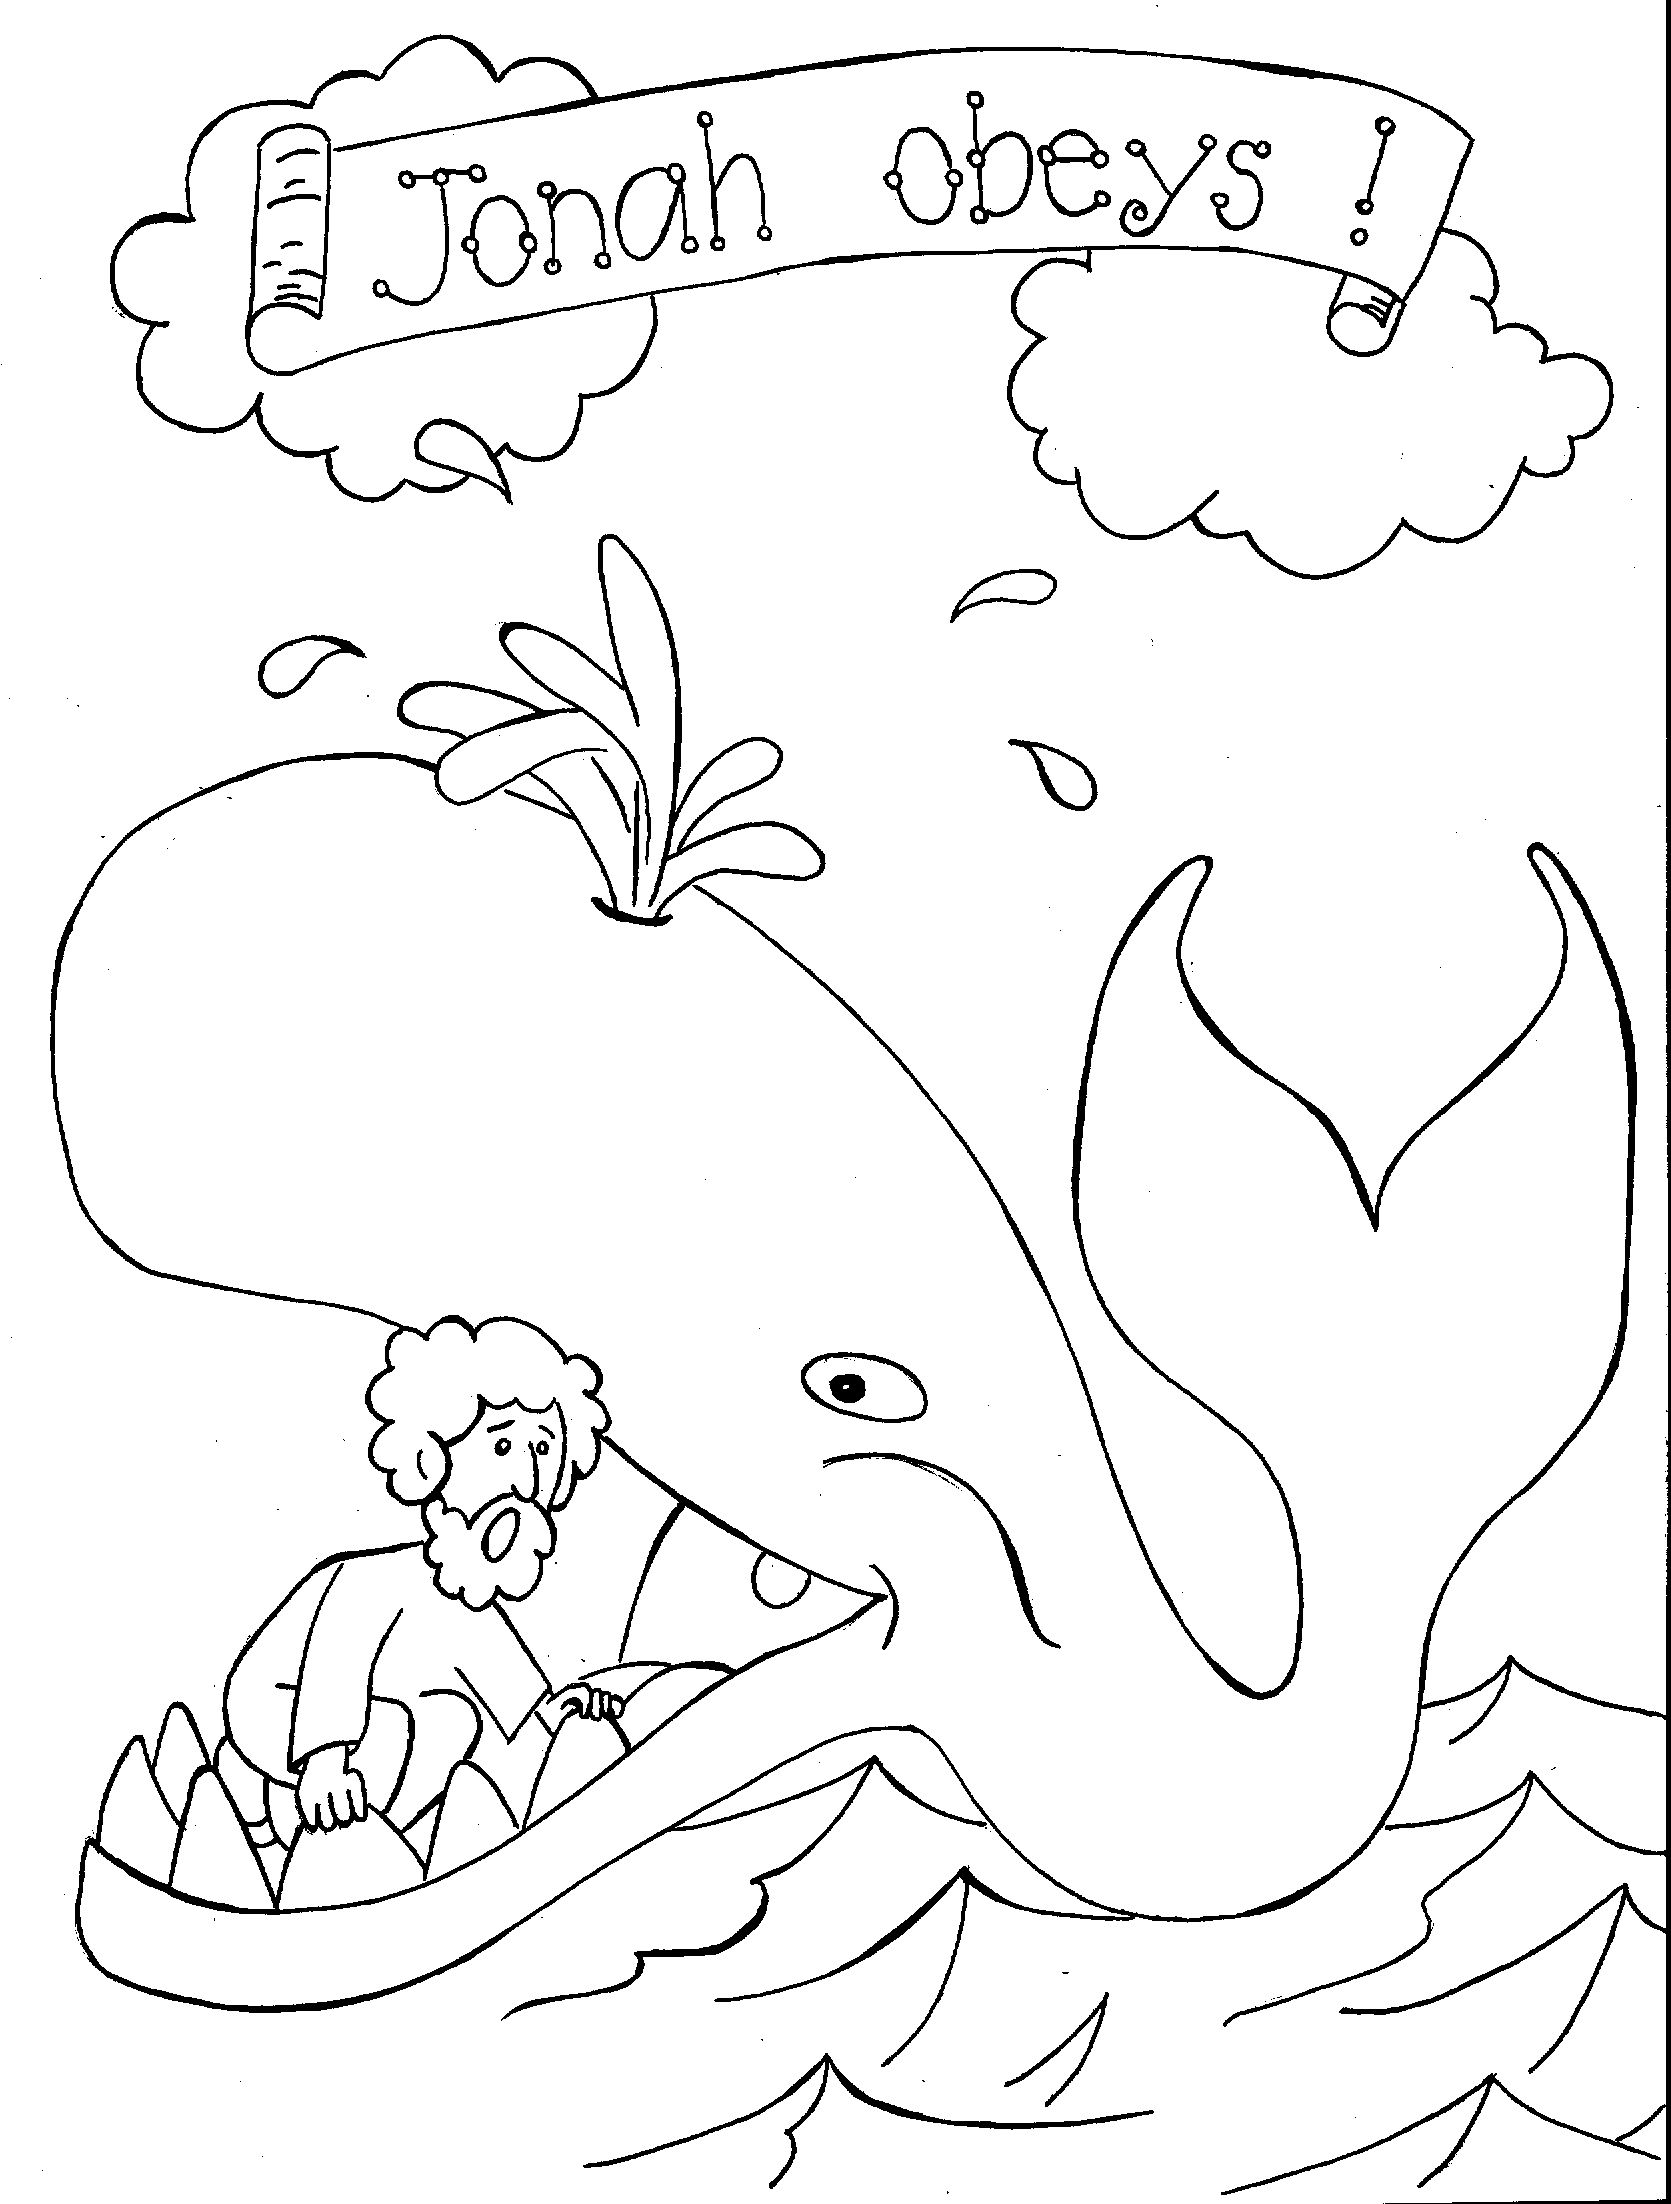 whale coloring pictures 20 printable whale coloring pages your toddler will love coloring whale pictures